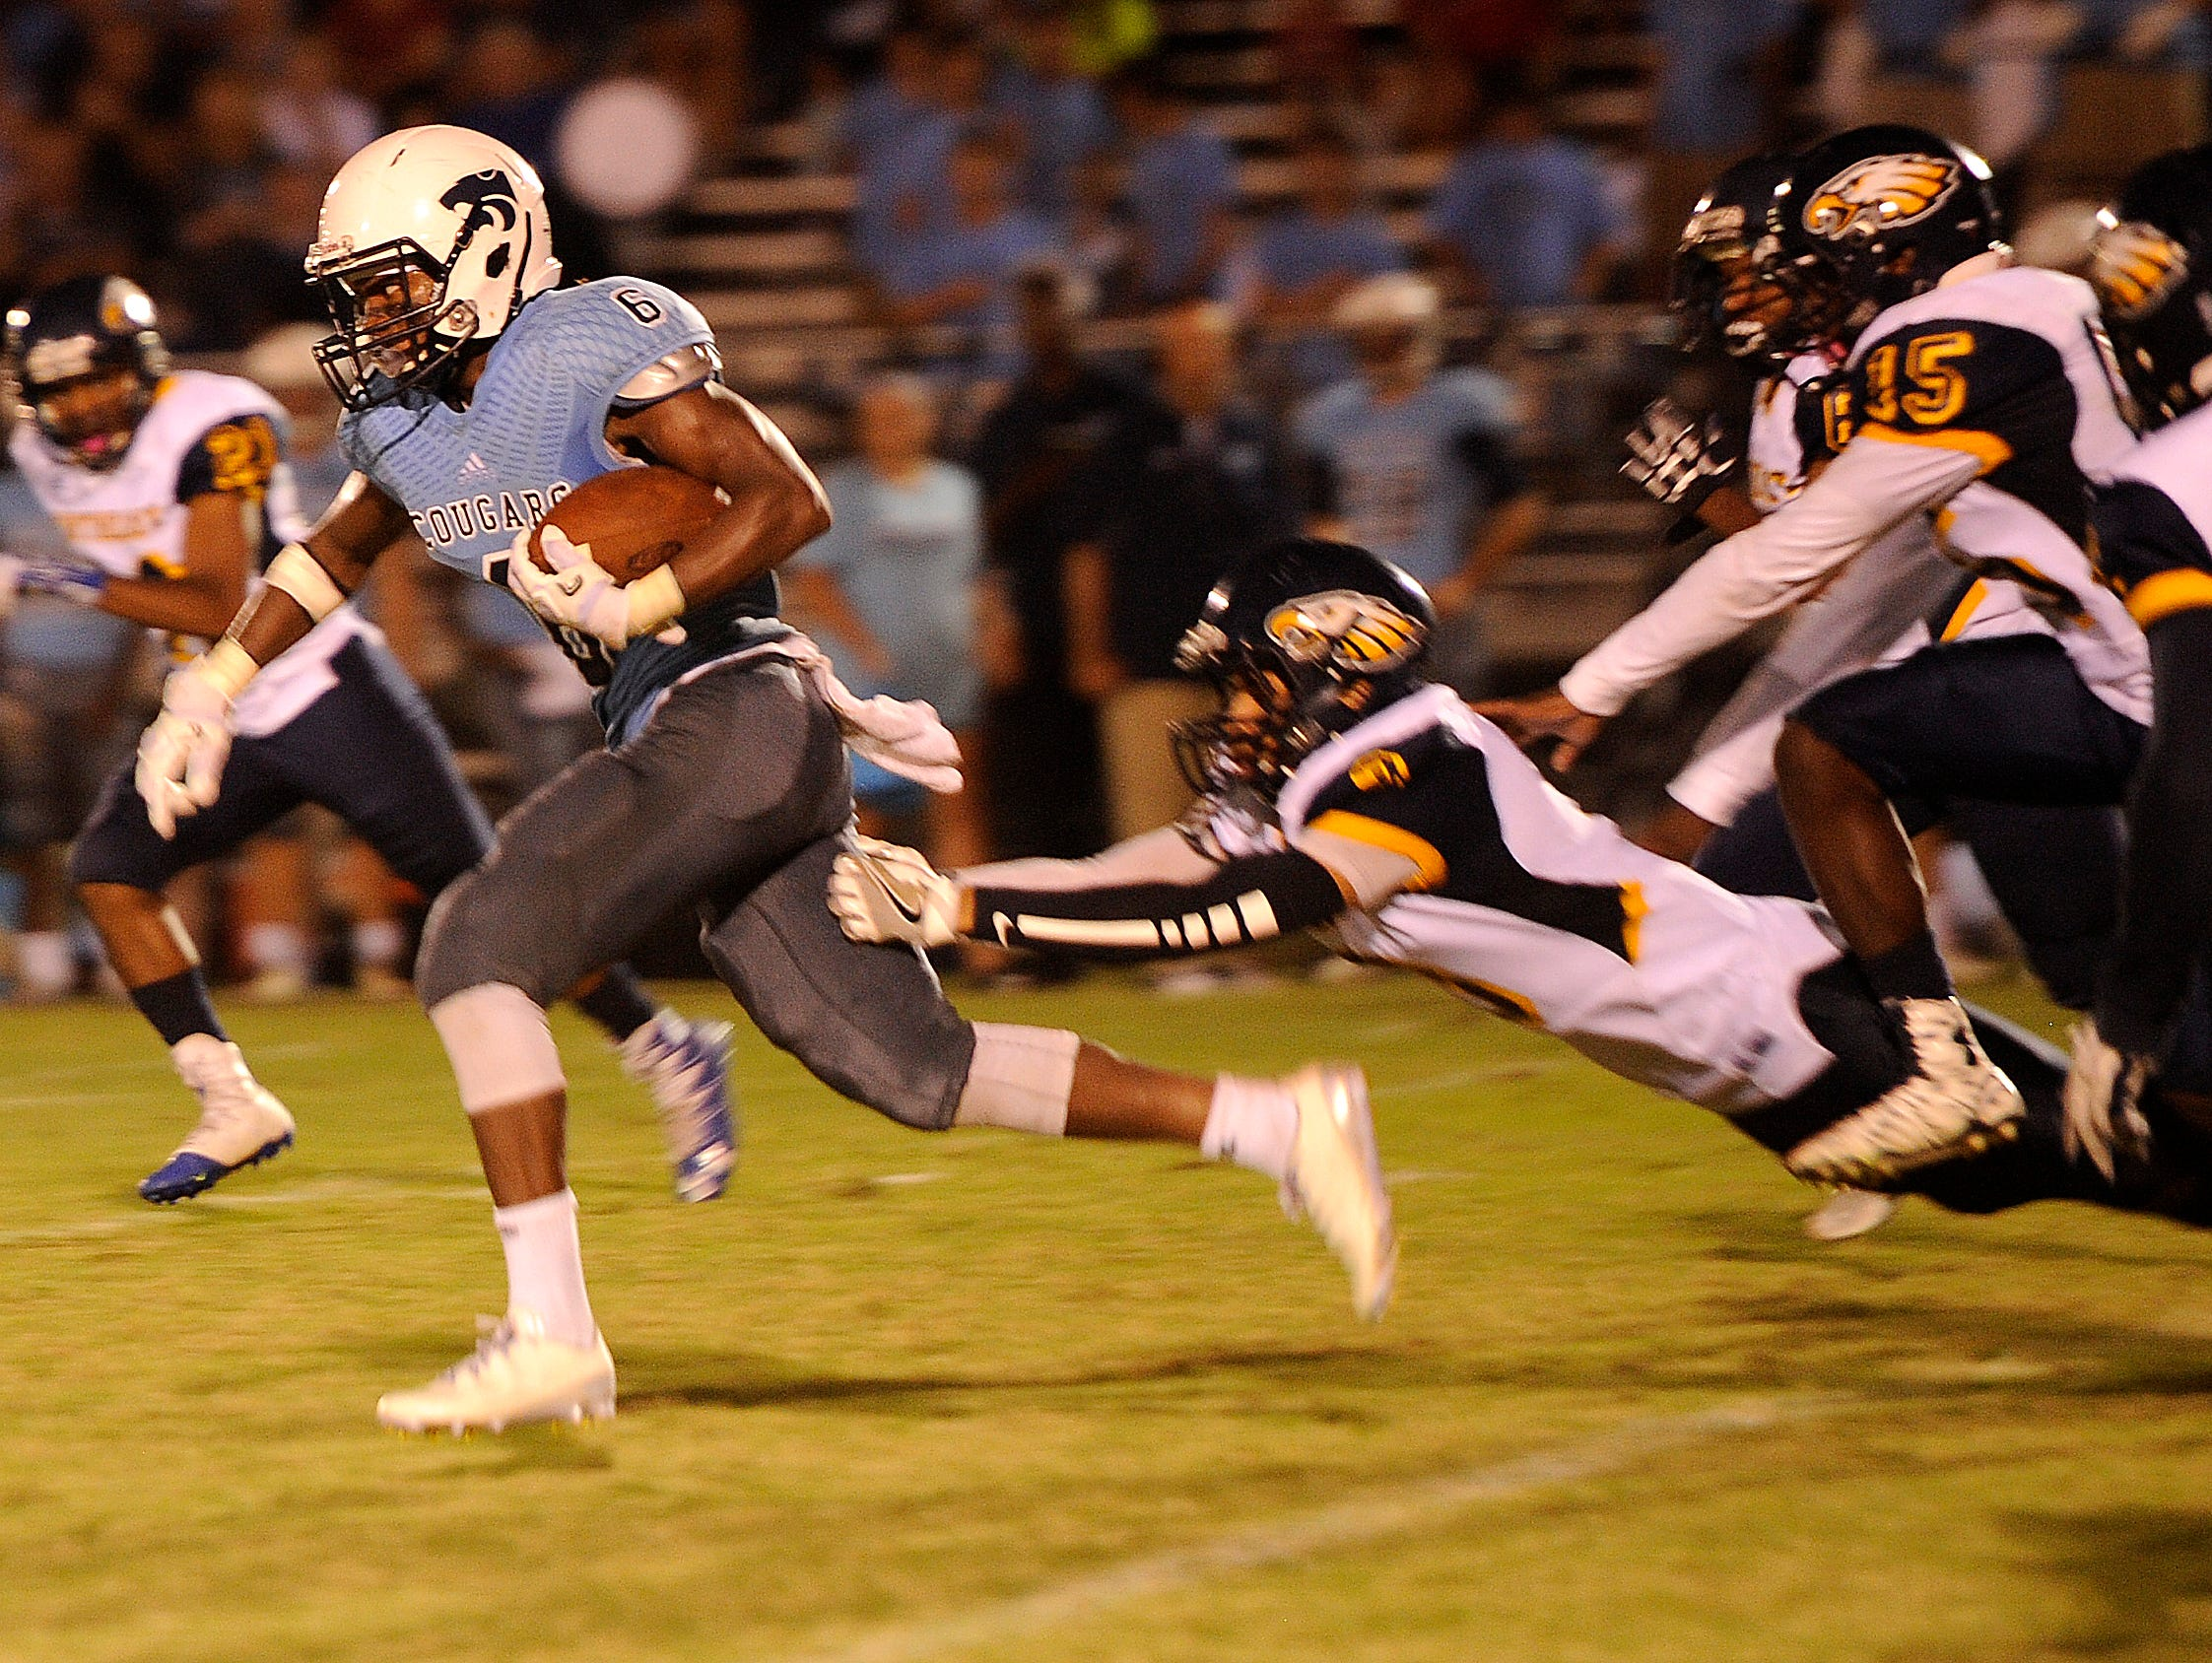 Jariel Wilson rushed for 200 yards and three touchdowns in a 21-3 Centennial win over Northeast.